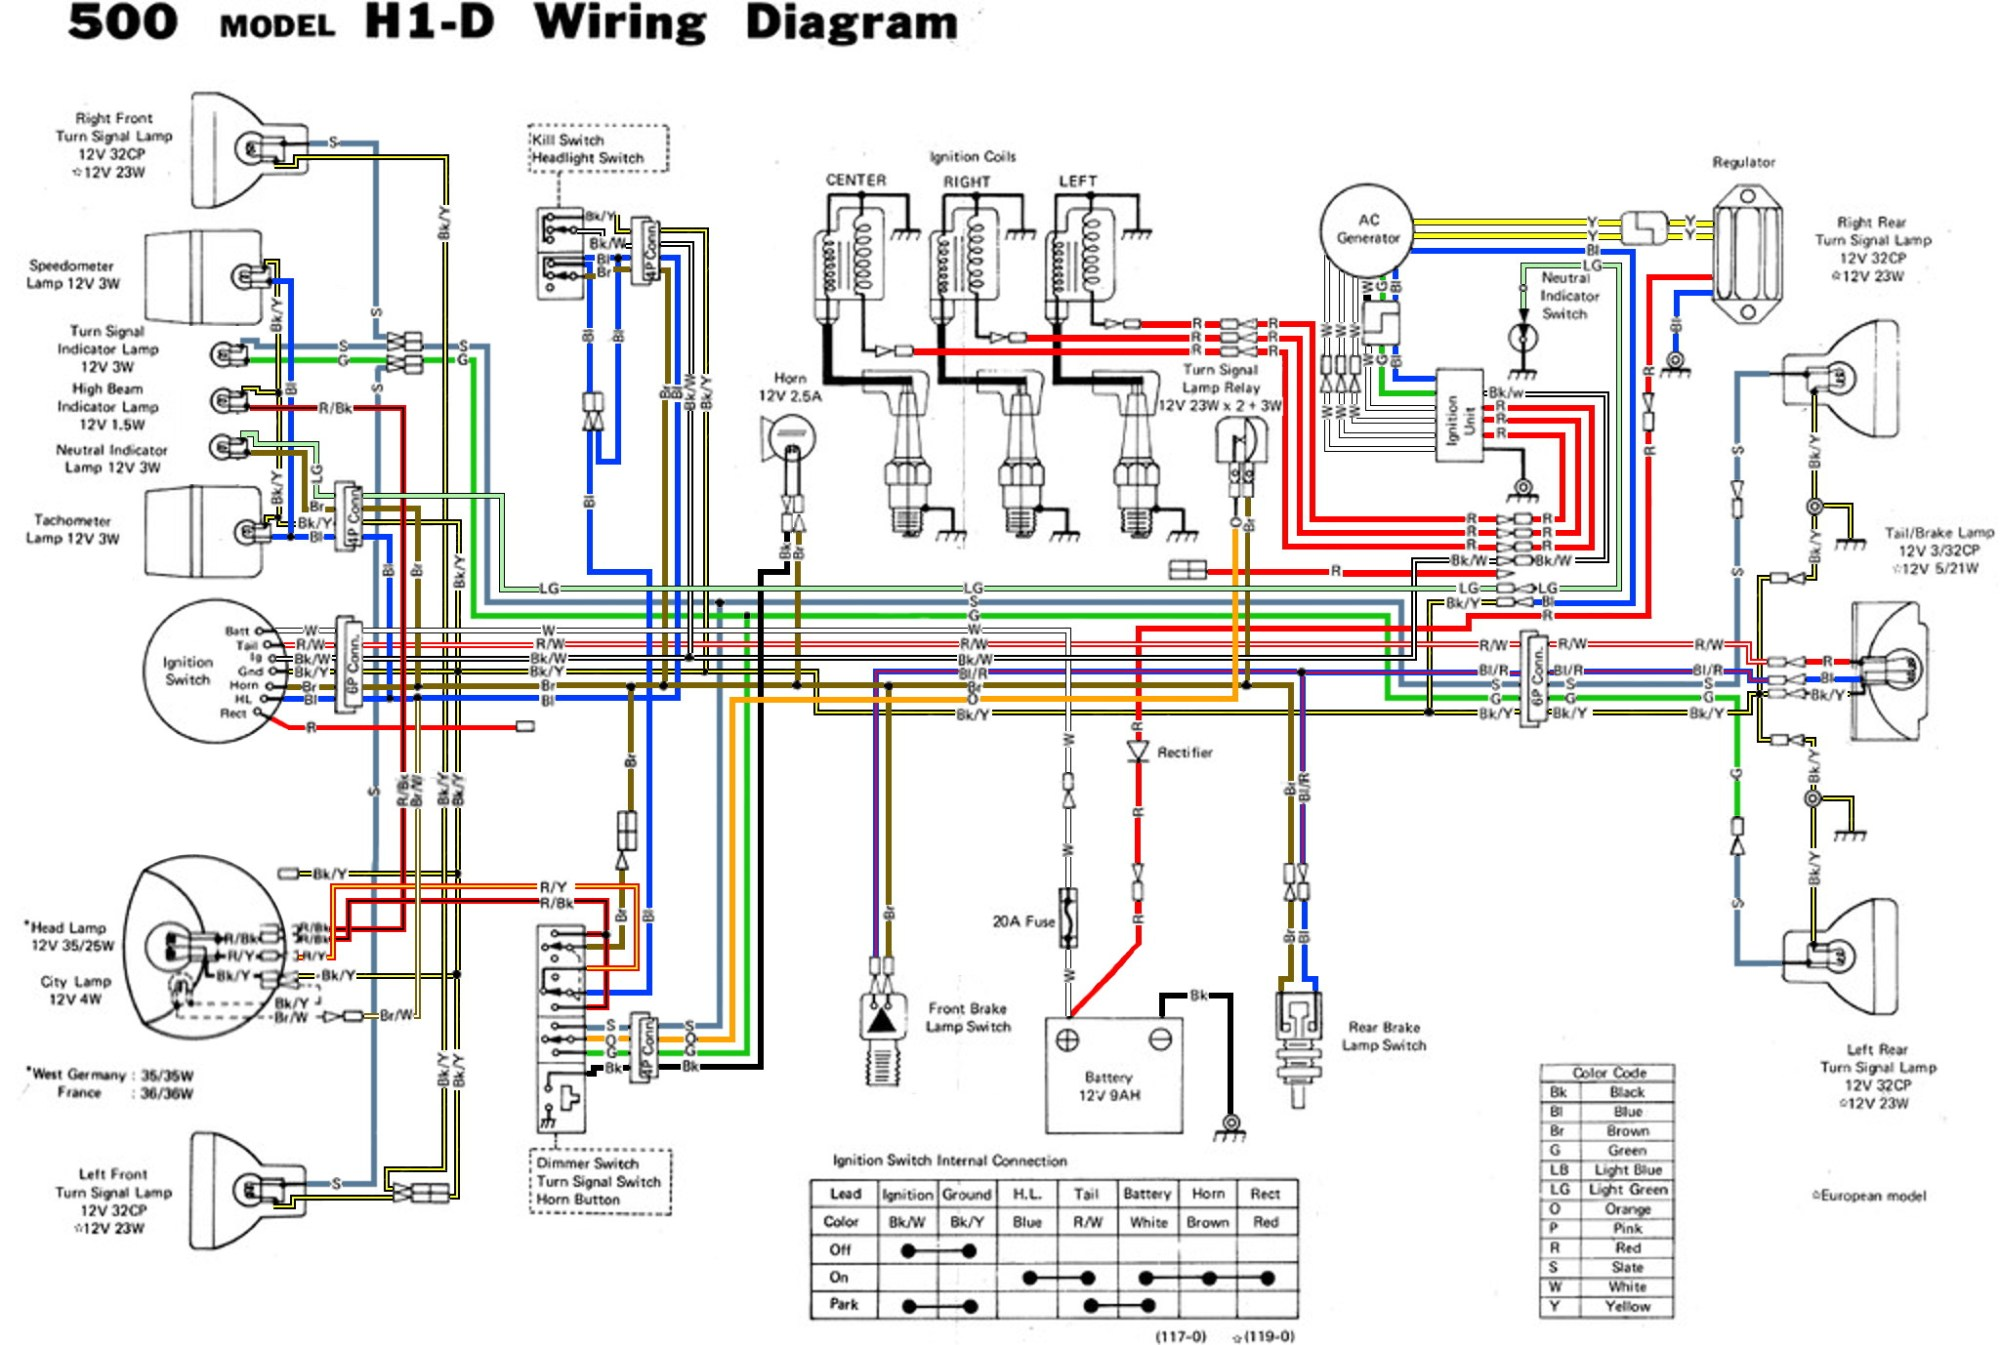 hight resolution of wiring diagramskh250b1 euro h1d